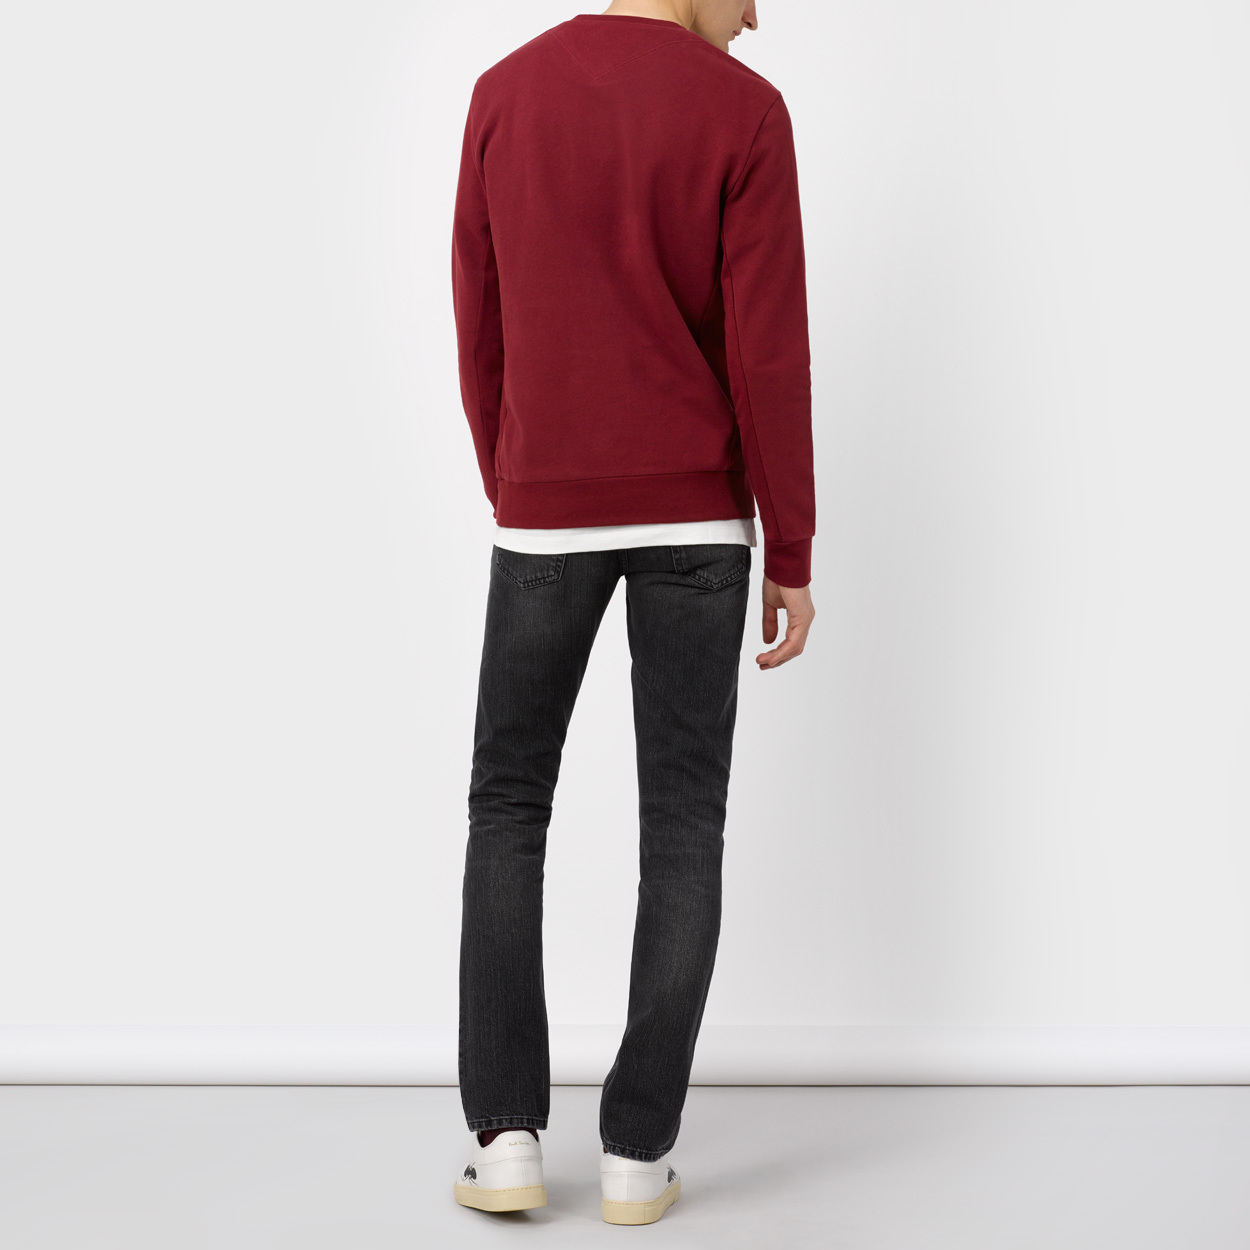 Lyst Paul Smith Men S Burgundy Flag Motif Sweatshirt In